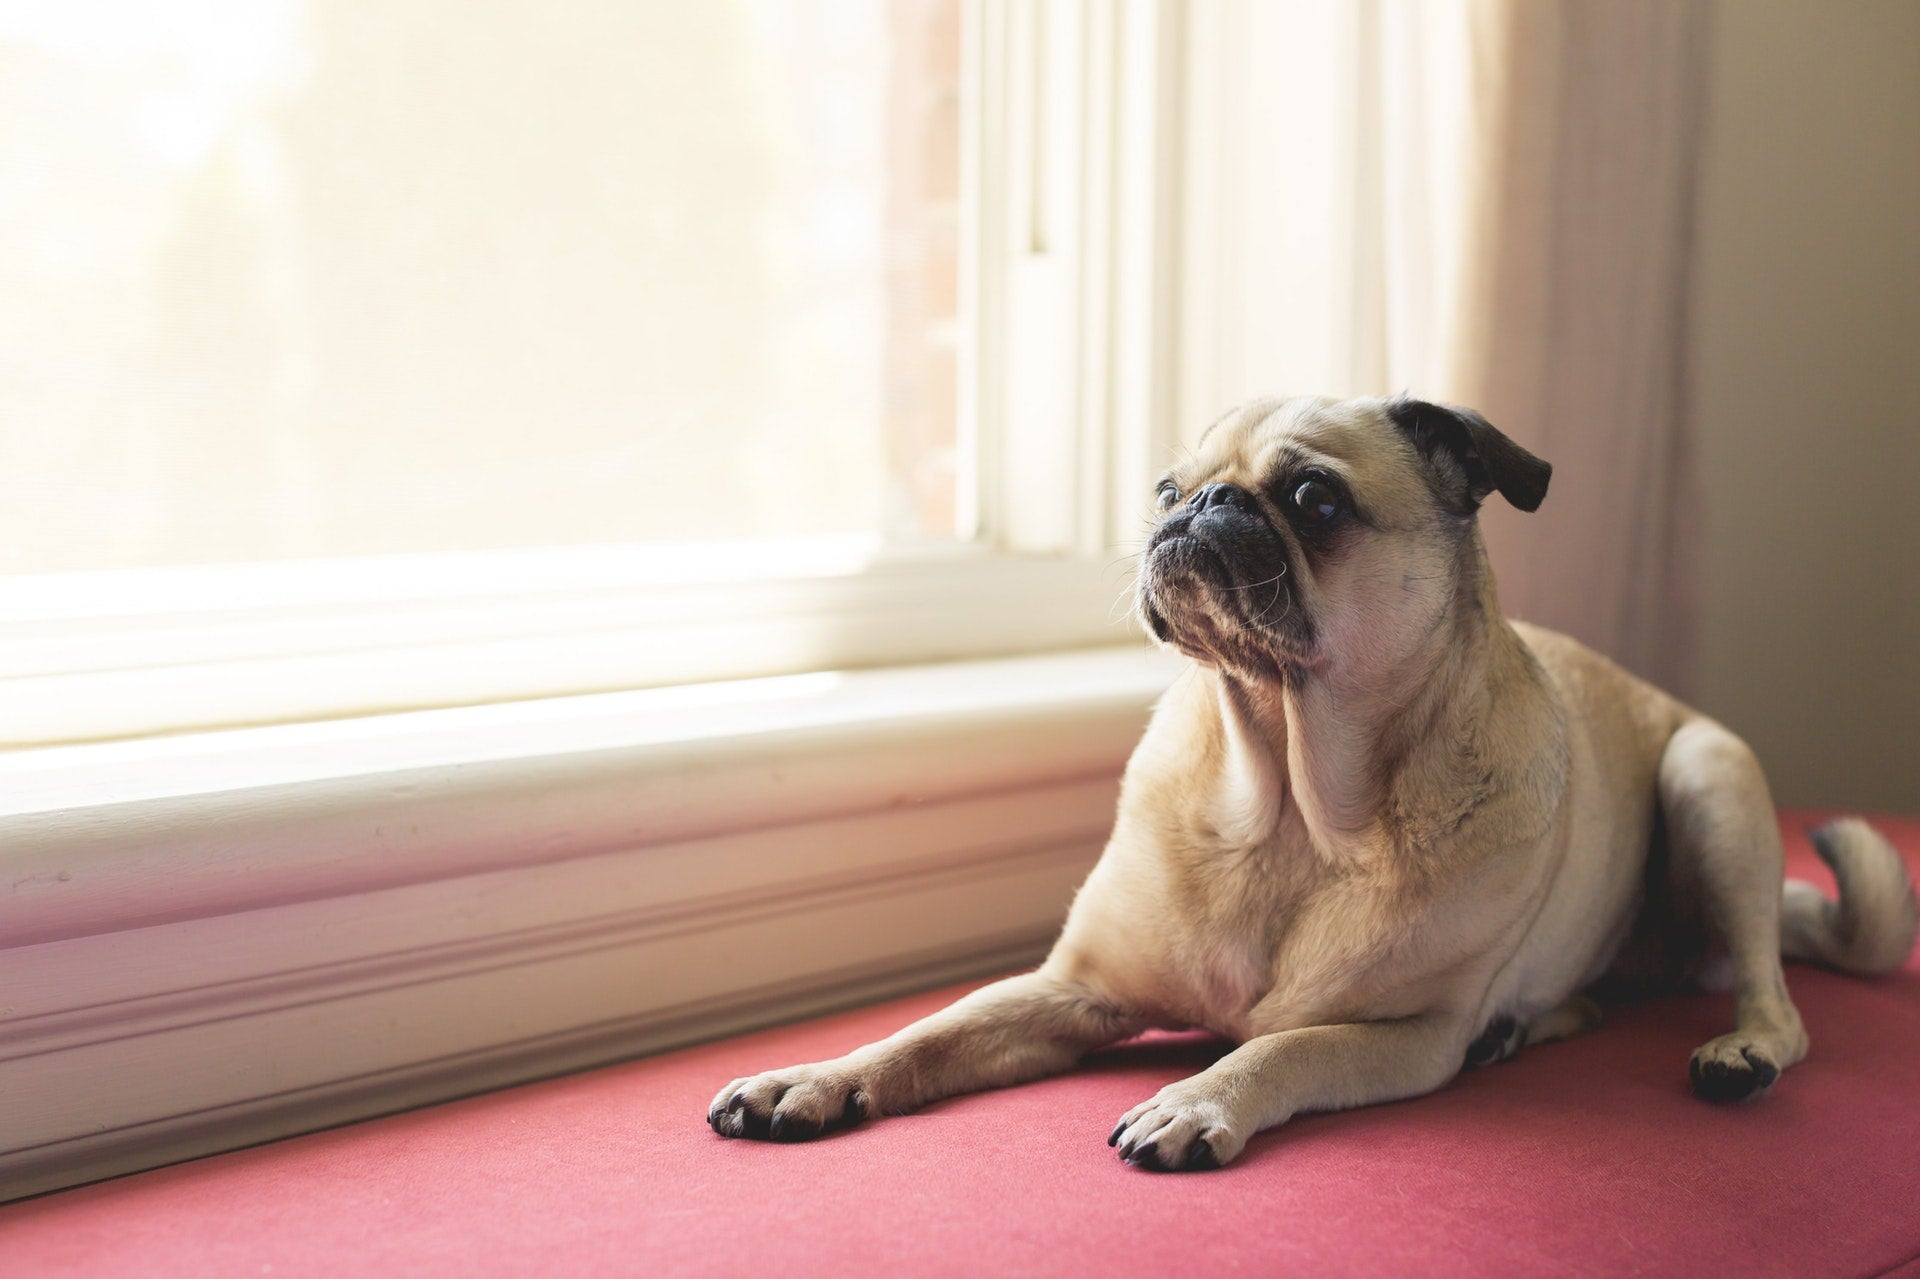 Sad Pug sitting at window